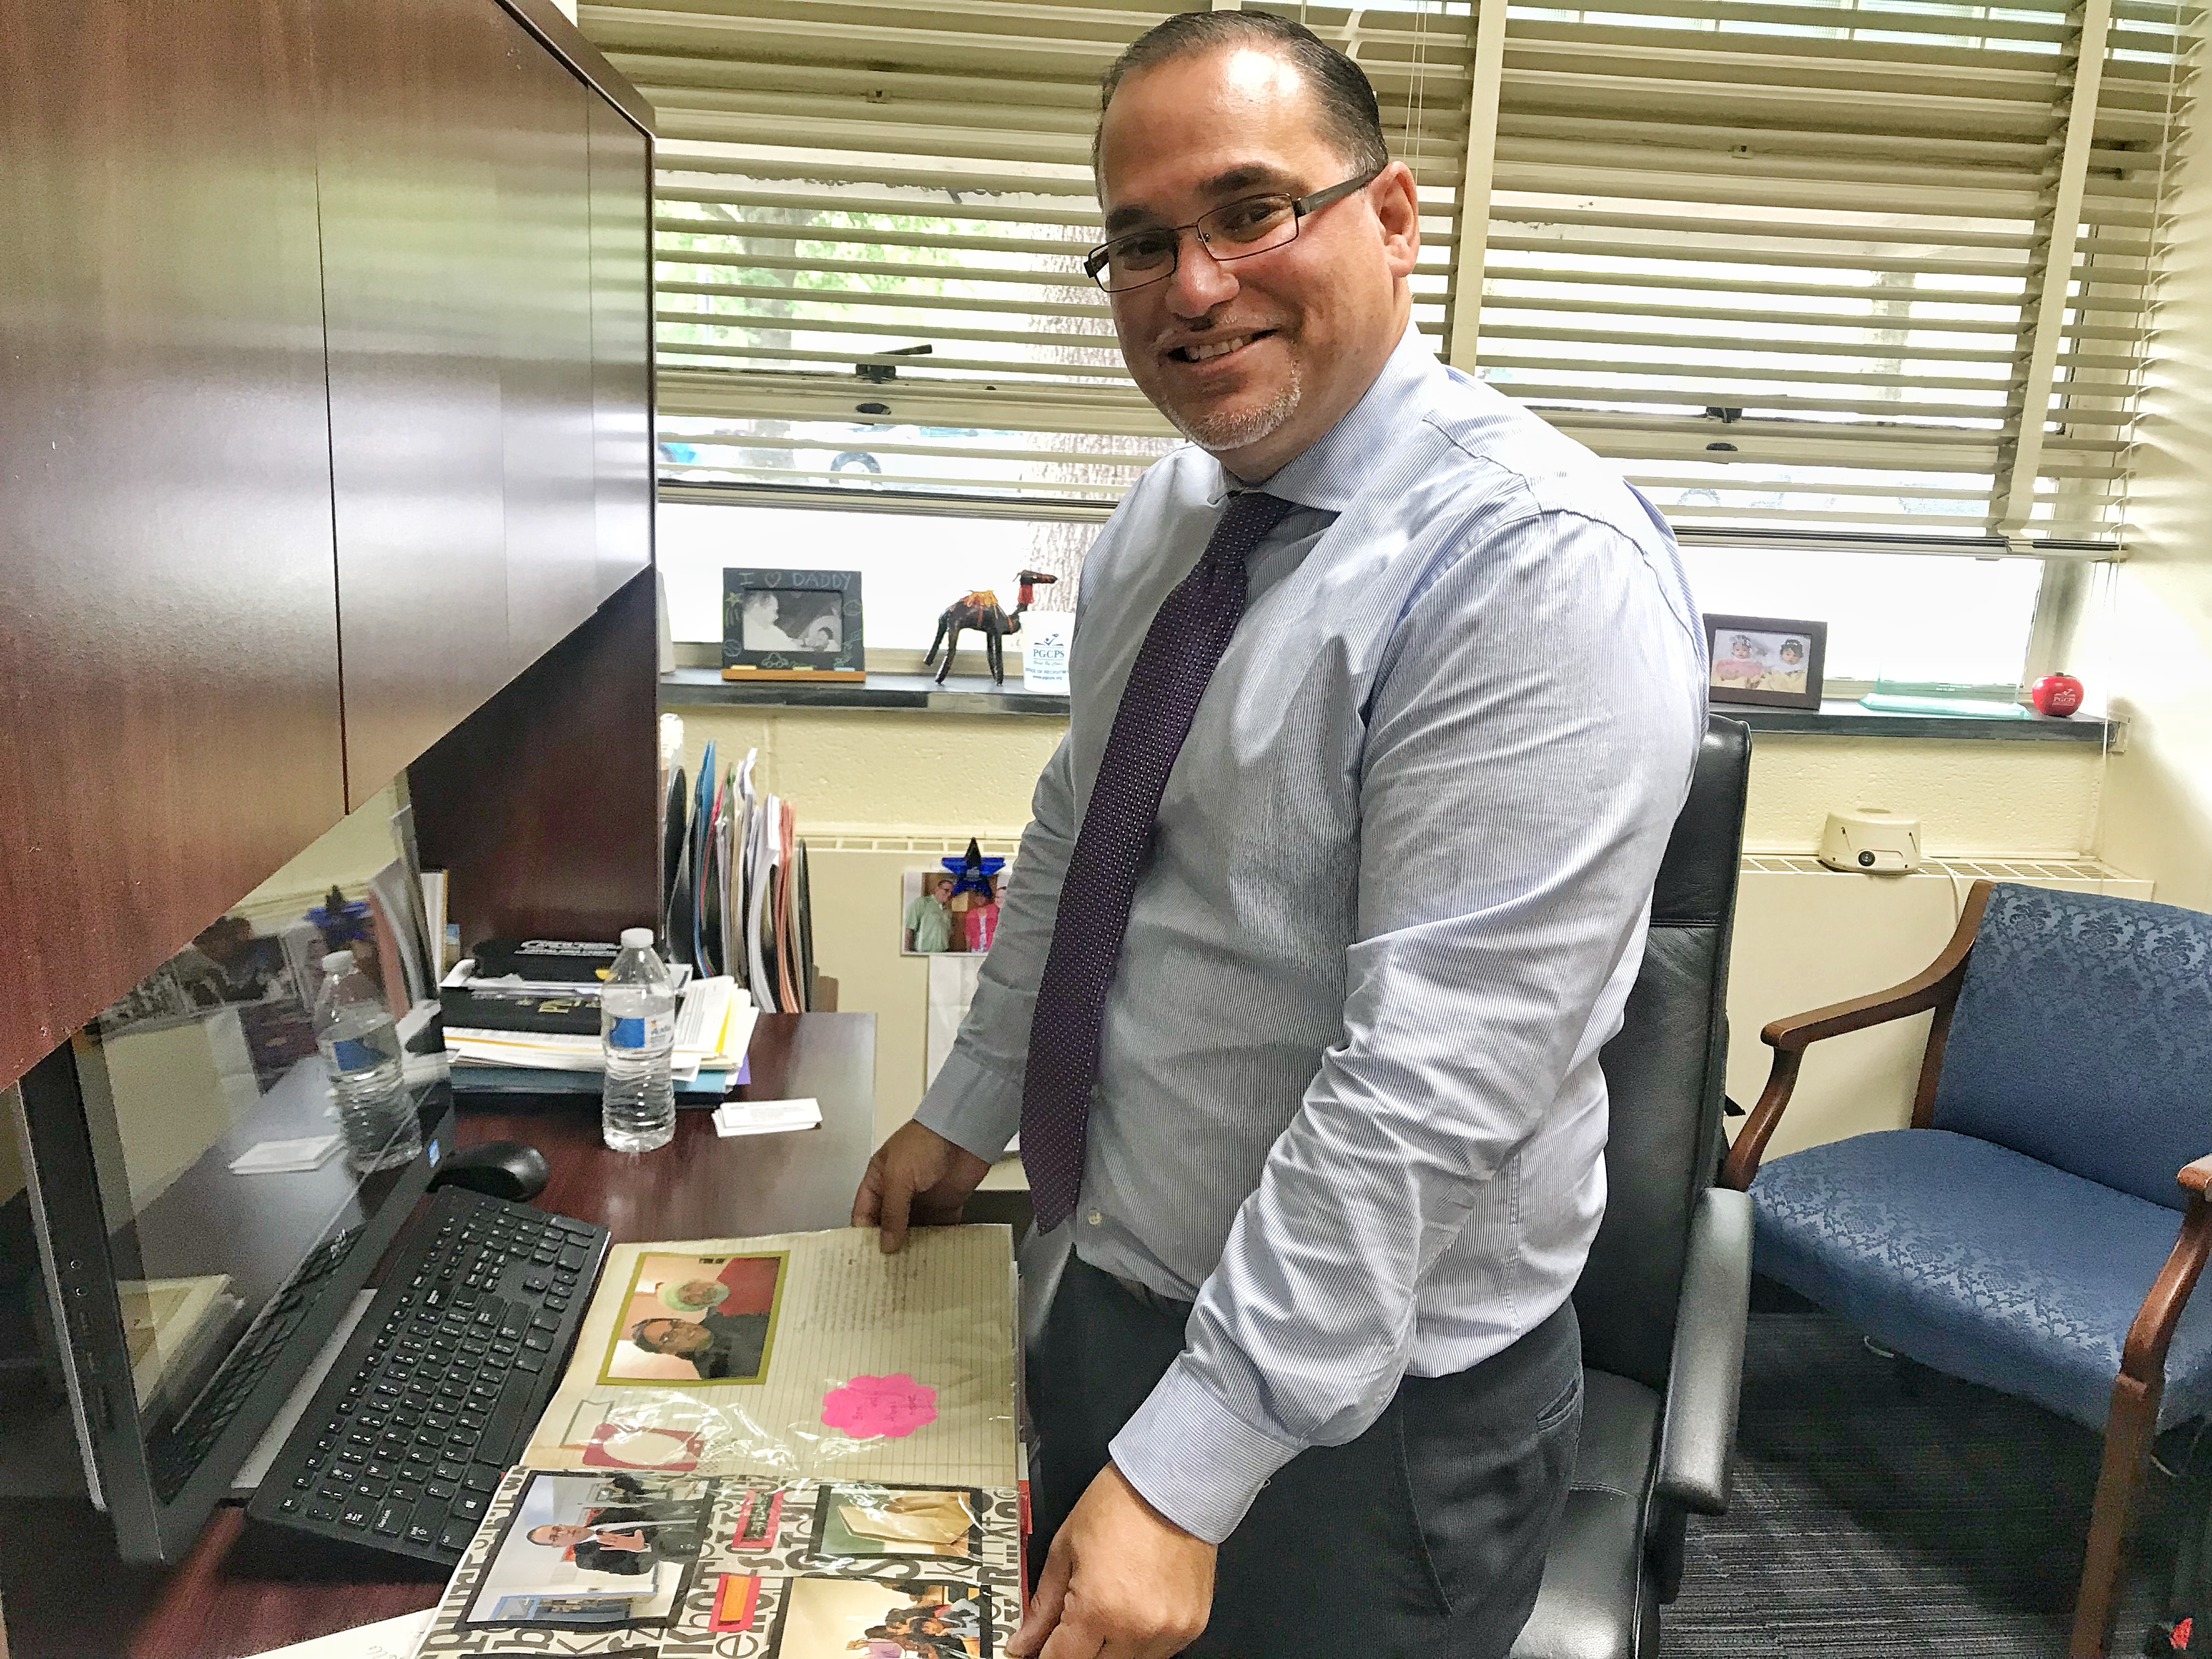 Rivera-Figueroa shares memories from his work as a teacher, assistant principal and principal. He now recruits bilingual educators to serve the growing Latino enrollment.